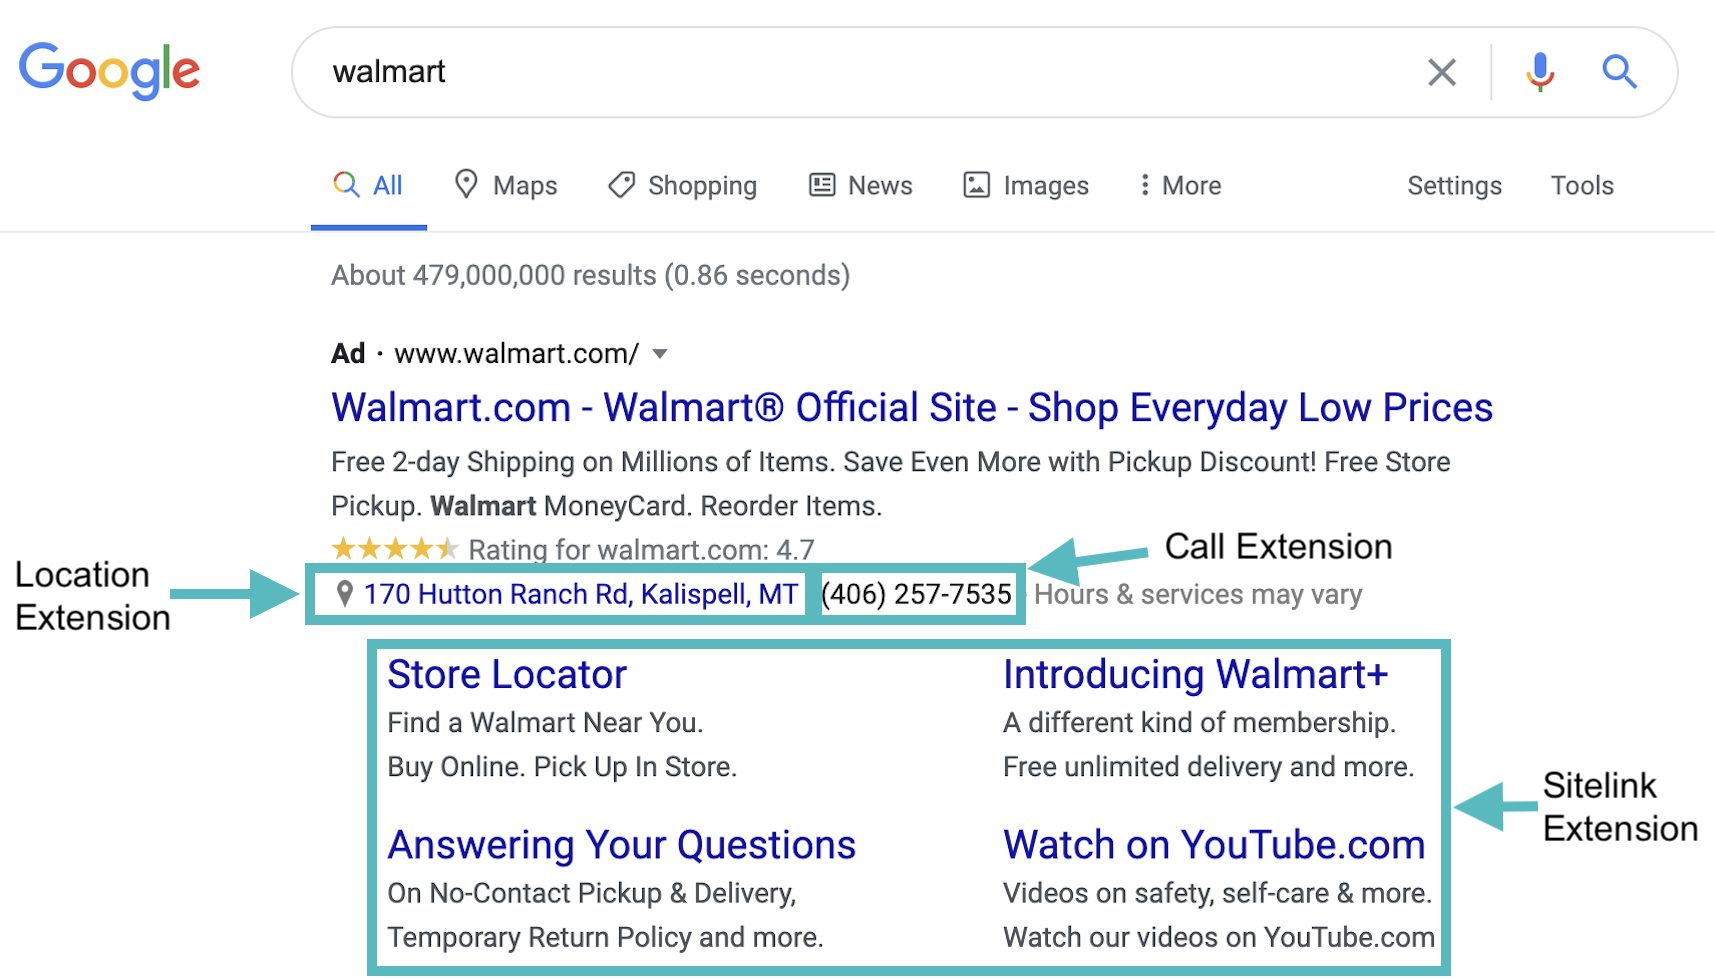 Using extensions in a branded search campaign can allow you to provide searches with additional information